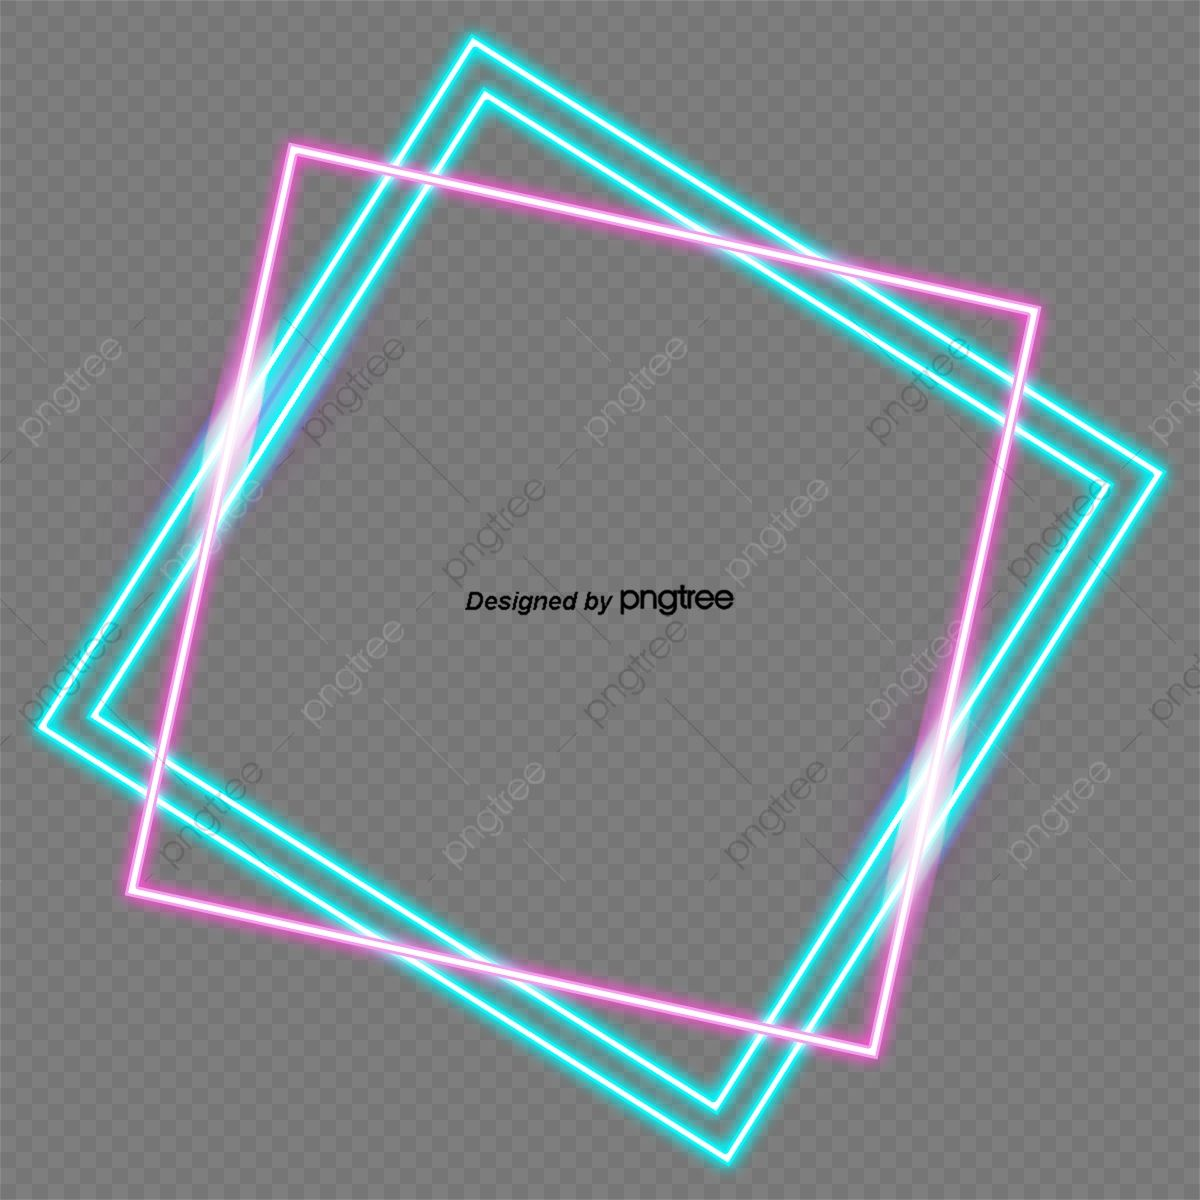 Download This Fashion Geometric Line Neon Frame Geometric Border Fashion Fluorescence Png Clipart Image With T Geometric Lines Png Images For Editing Neon